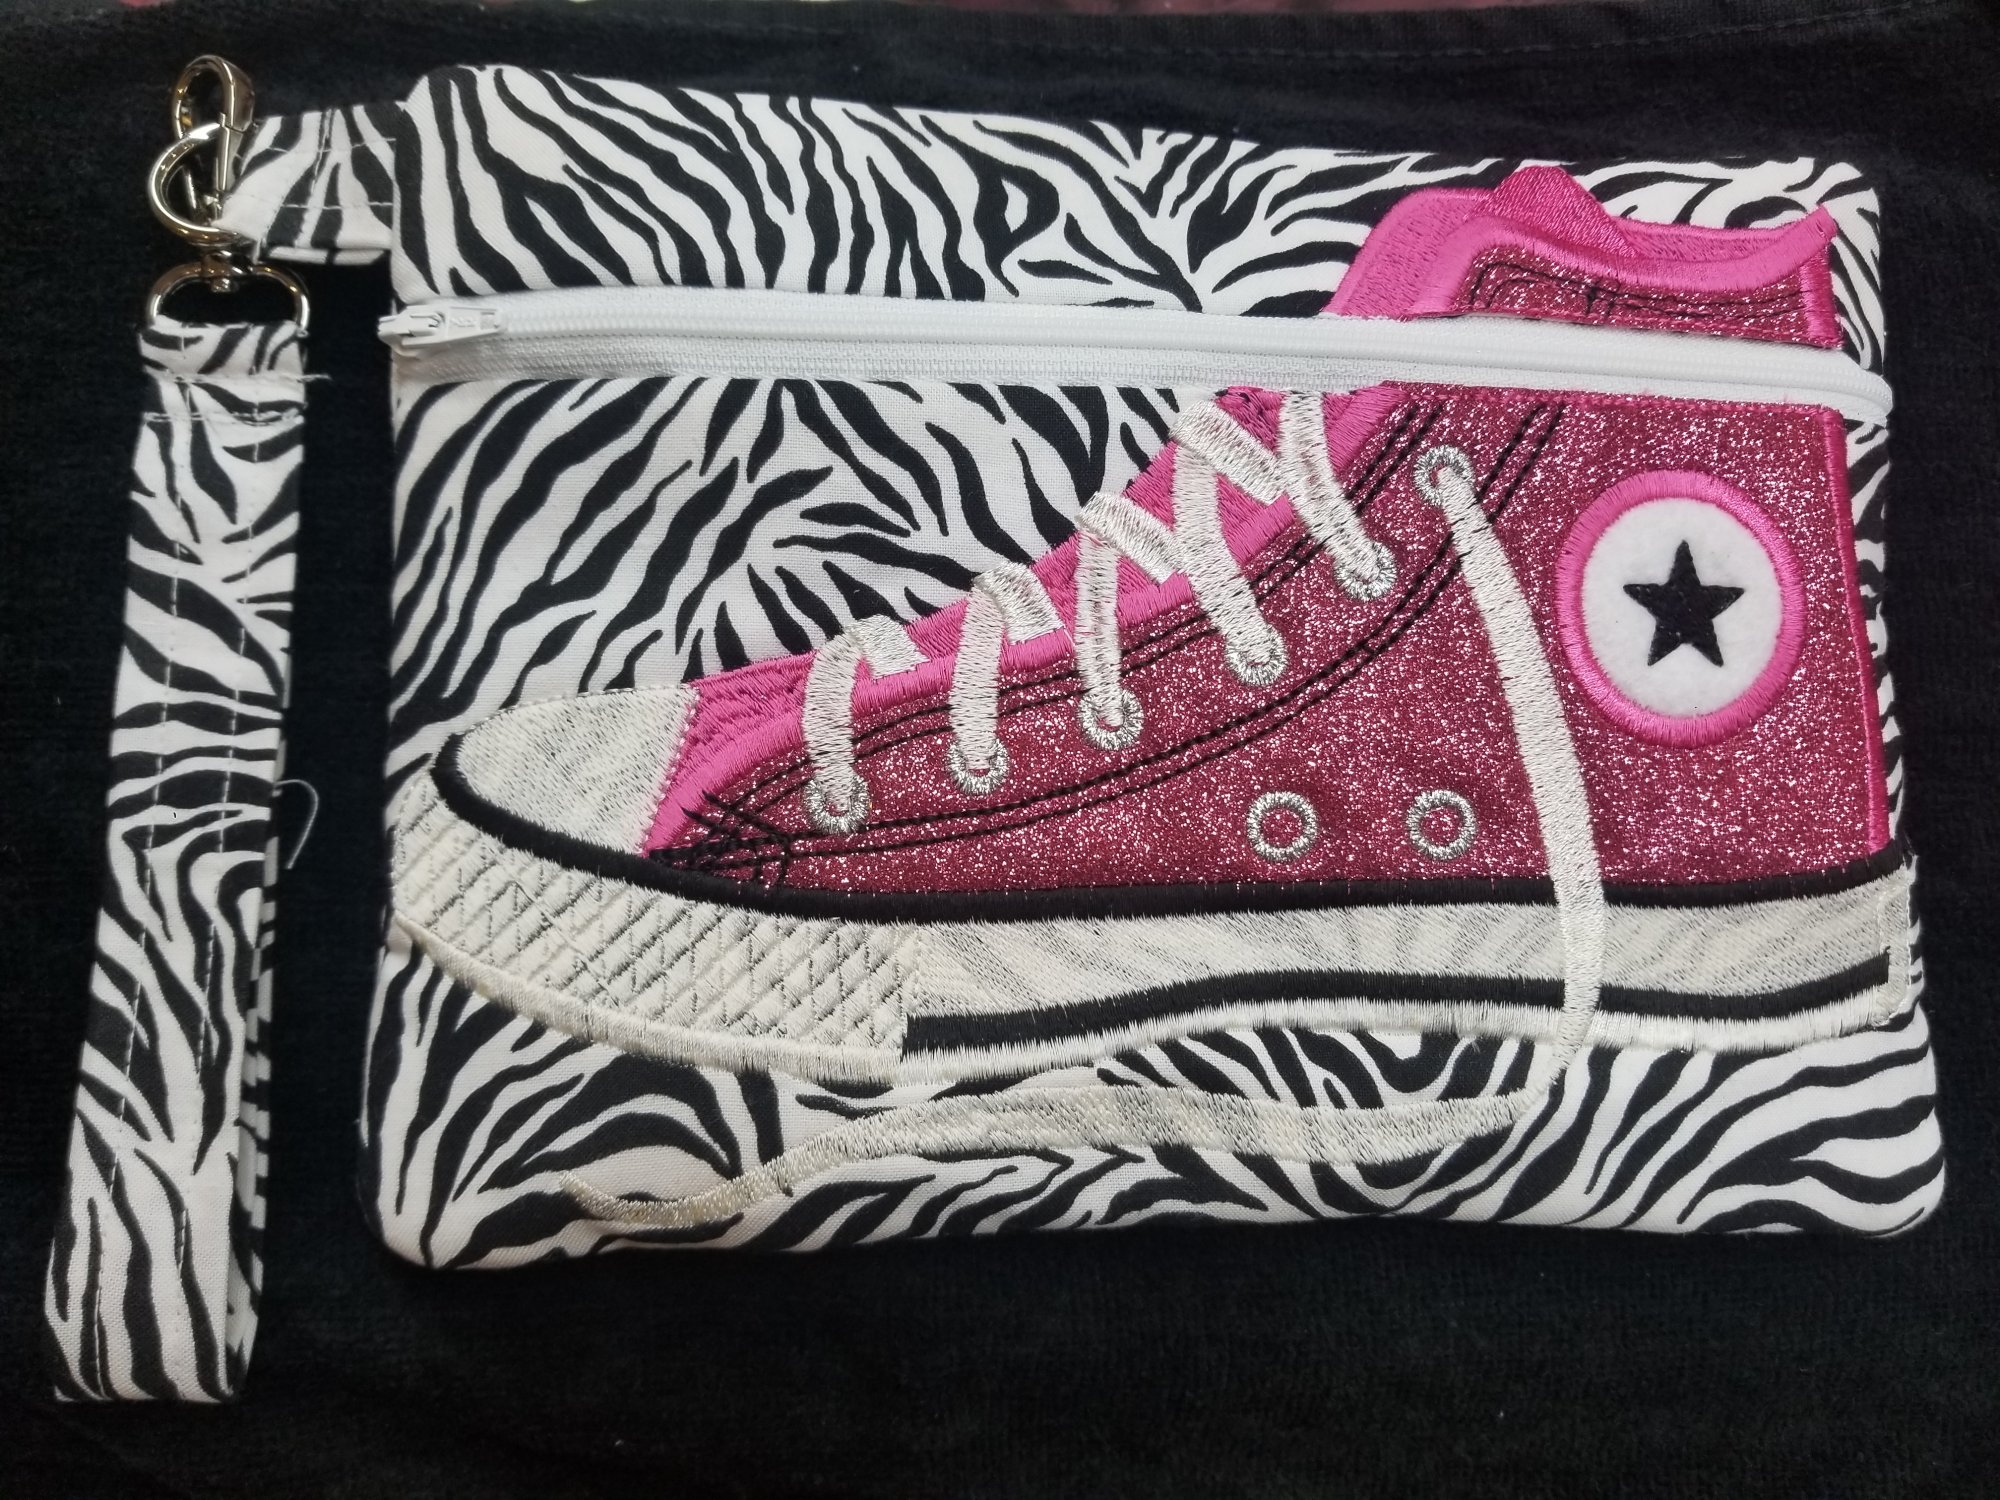 Pink Zebra Tennis Shoe Bag